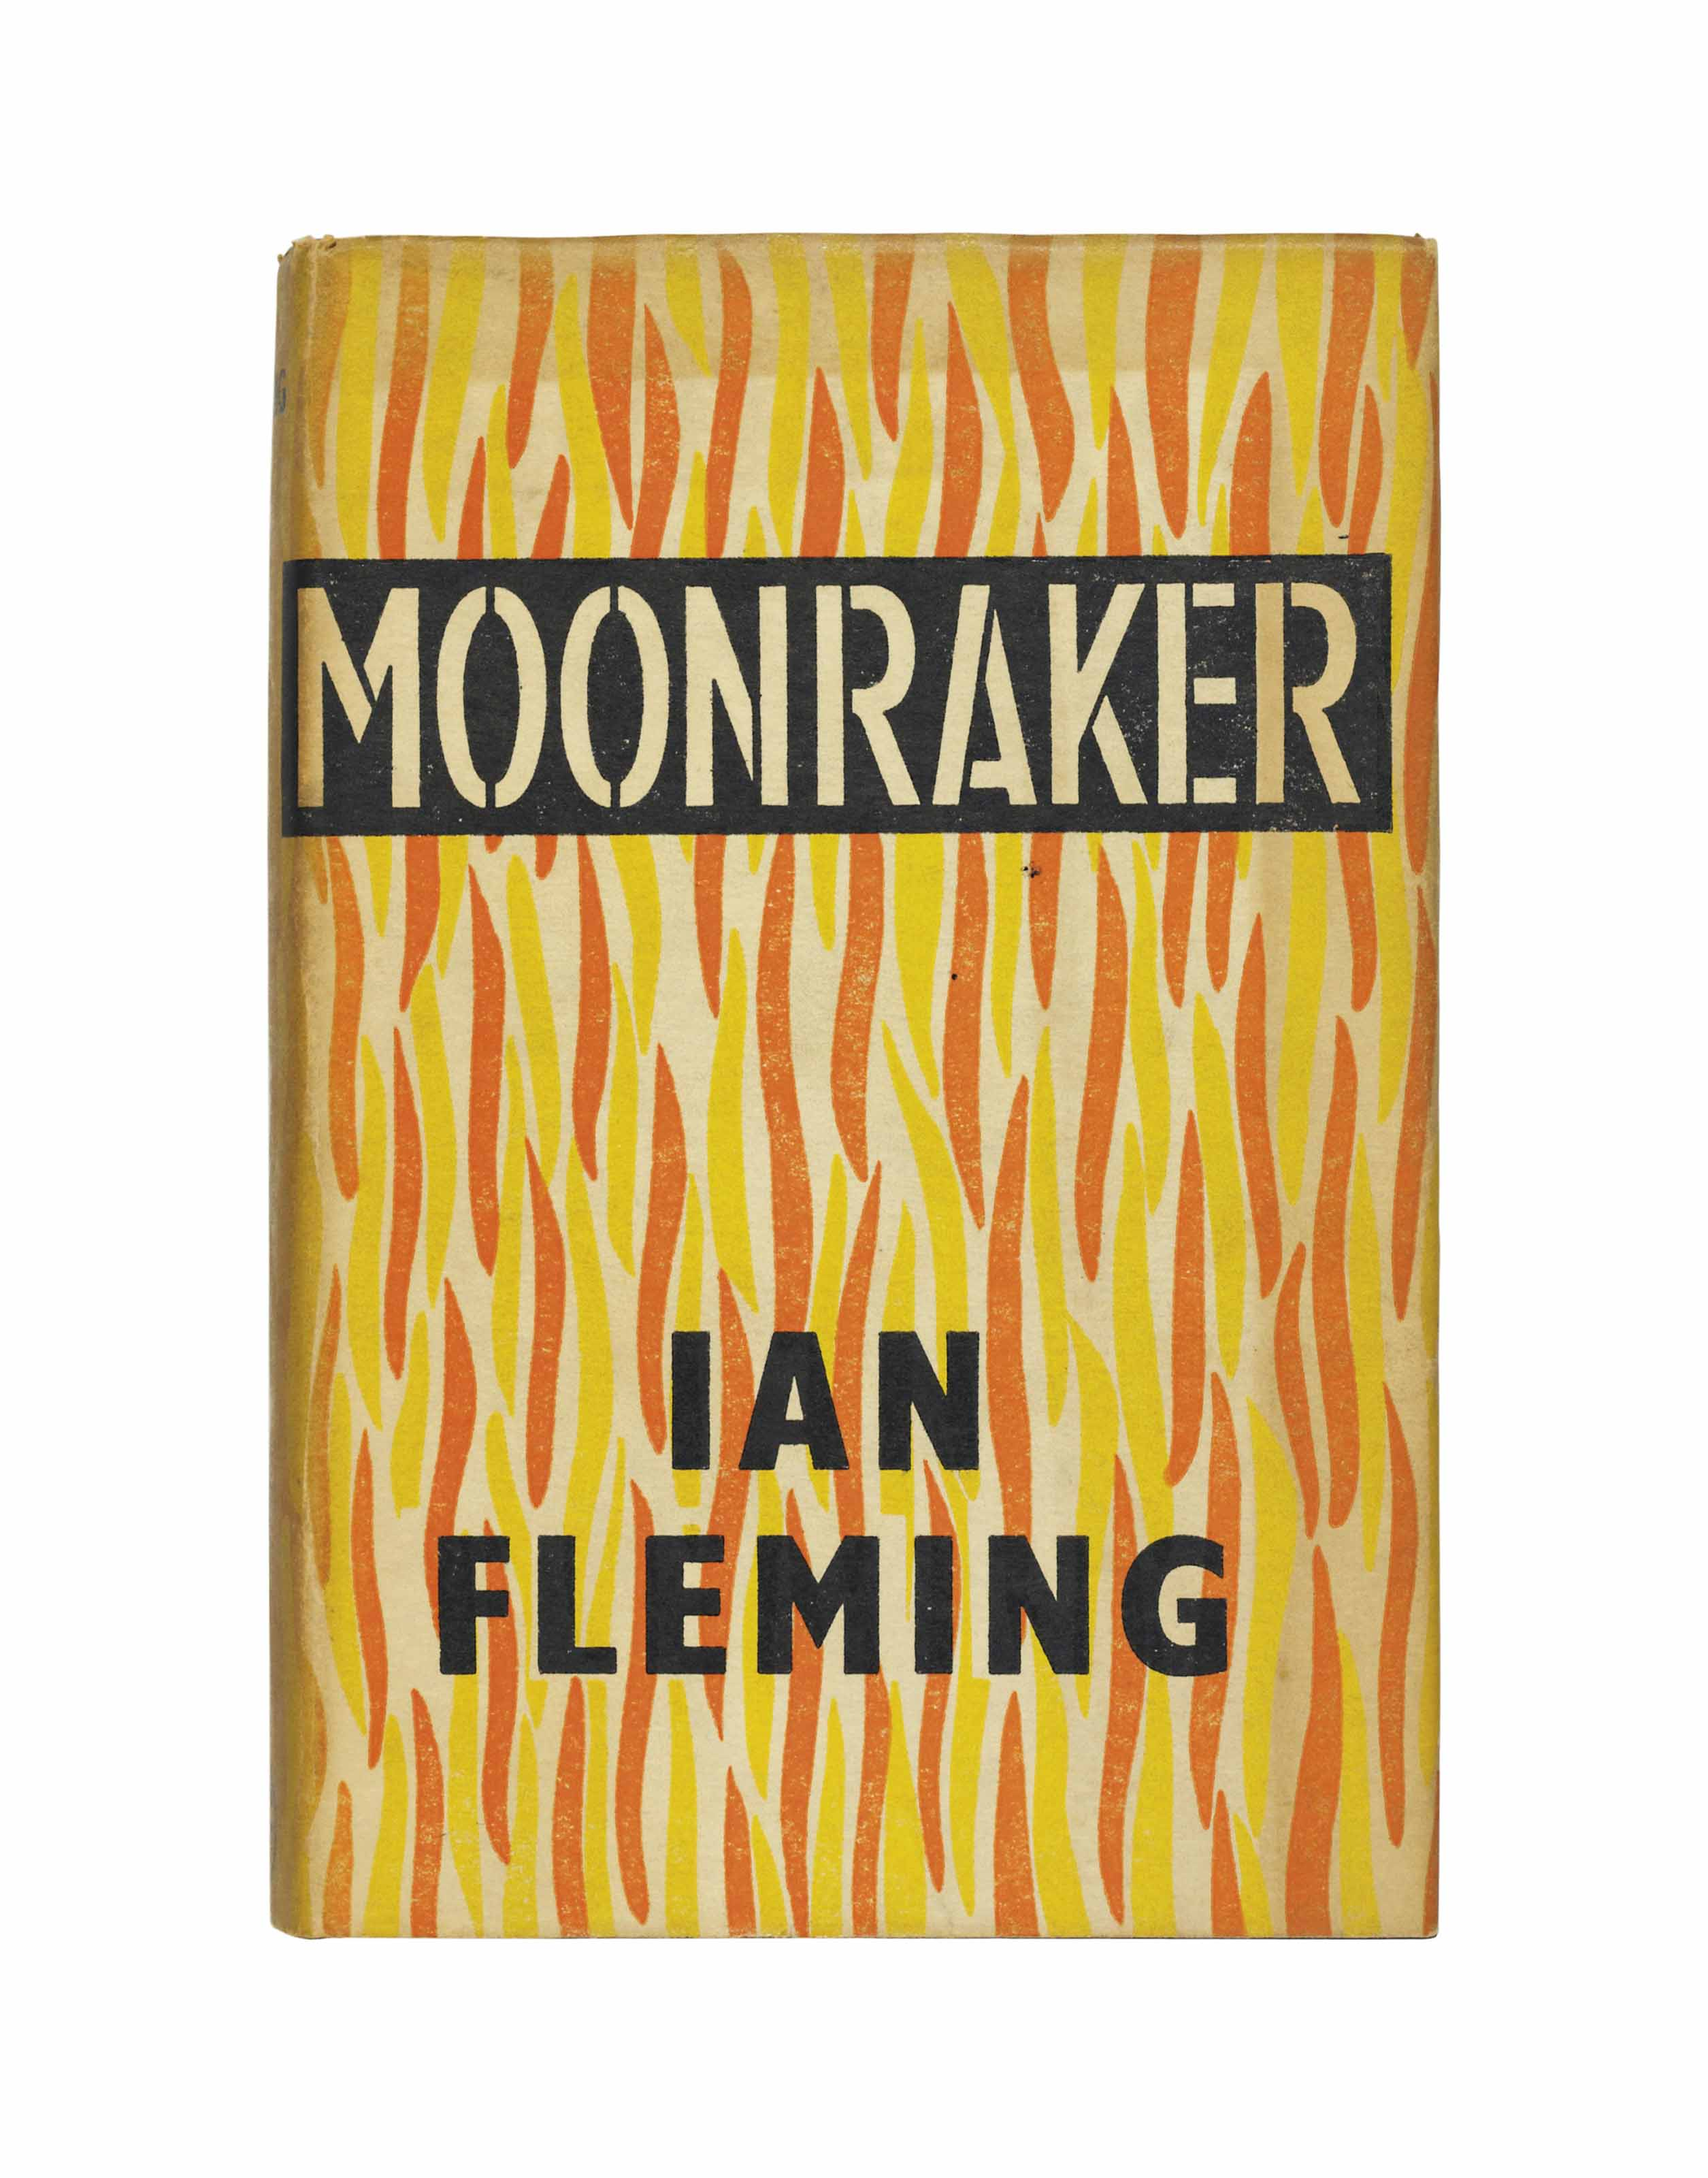 FLEMING, Ian (1908-1964). Moonraker. London: Jonathan Cape, 1955. 8° (190 x 125mm). Original black boards, lettered in silver, pictorial dust jacket by Kenneth Lewis after Ian Fleming (dust-jacket with a few creases to top edge, spine lightly faded, some light soiling). Provenance: Pat Perrey (ownership inscription).